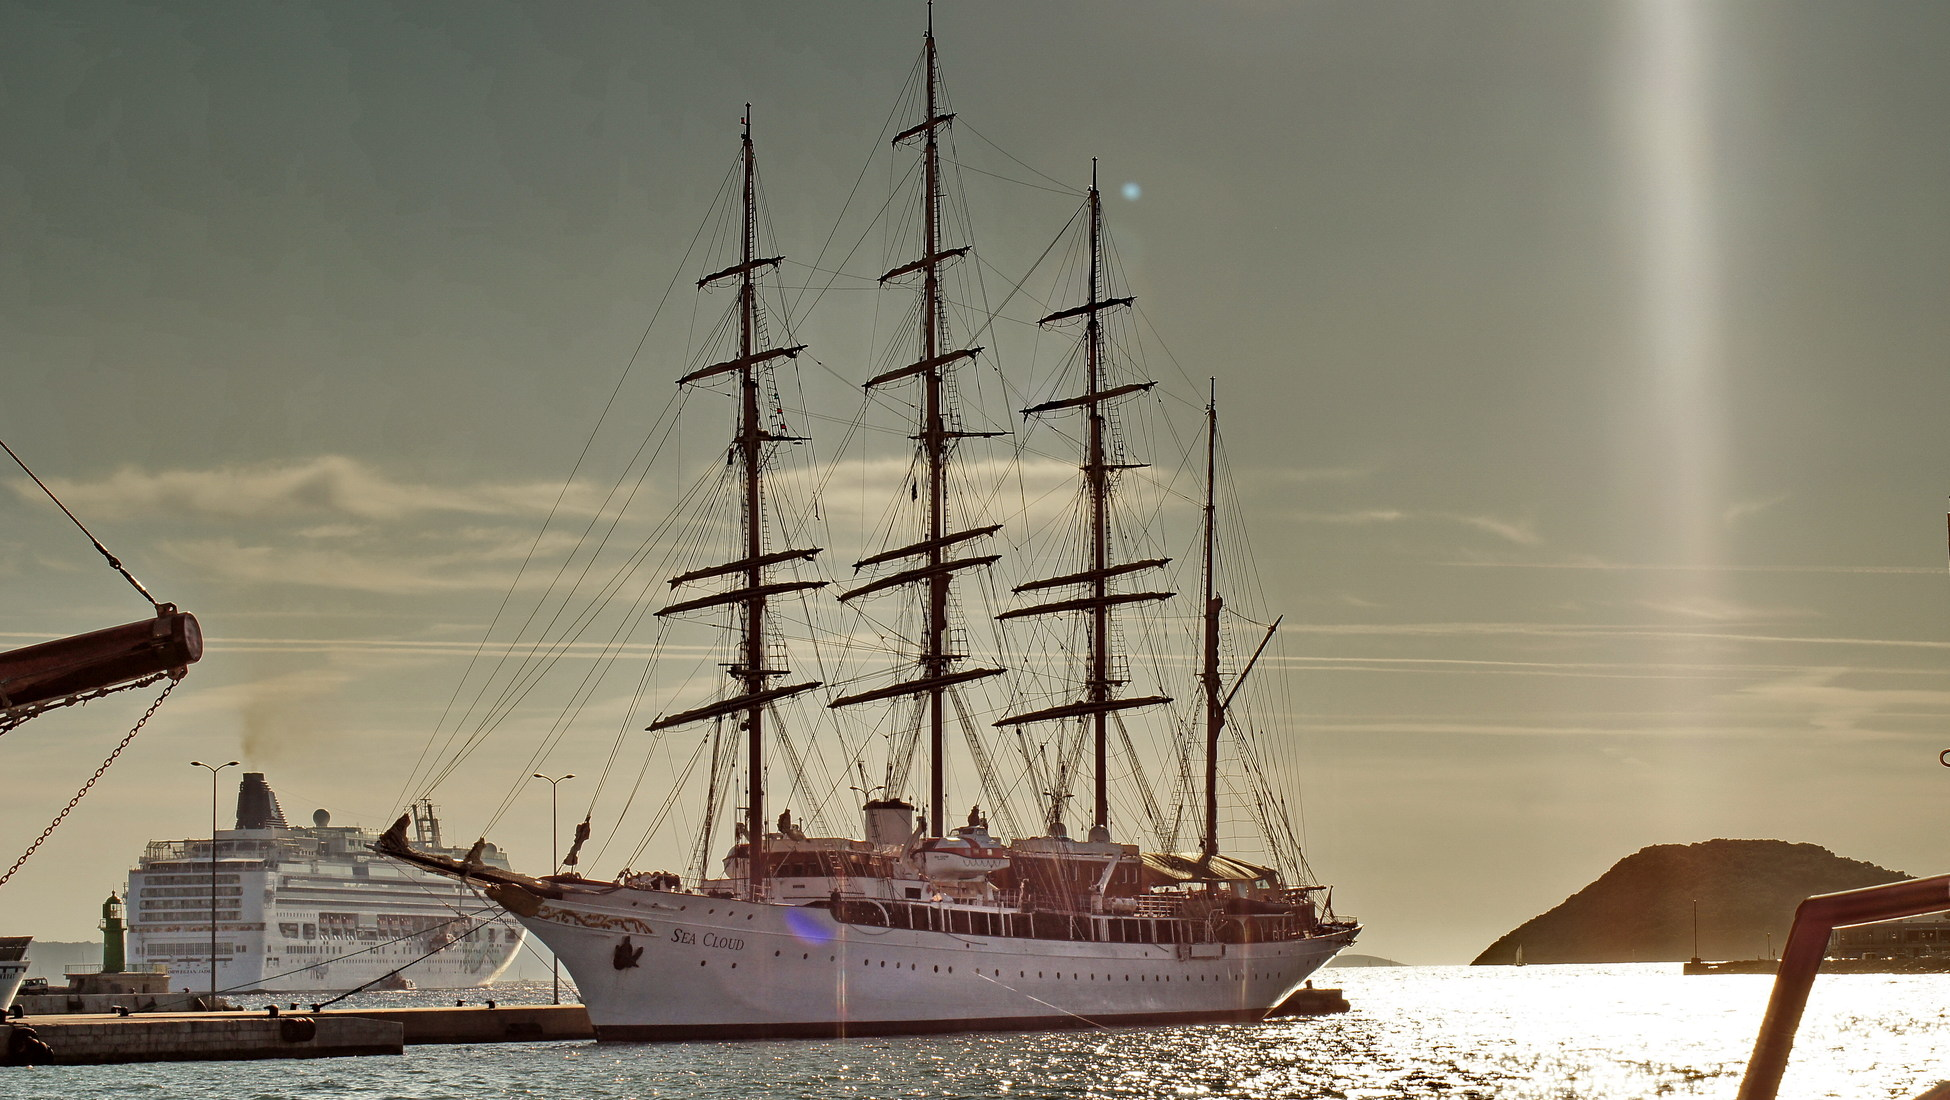 The 10 Most Expensive Sailboats in the World - Catawiki